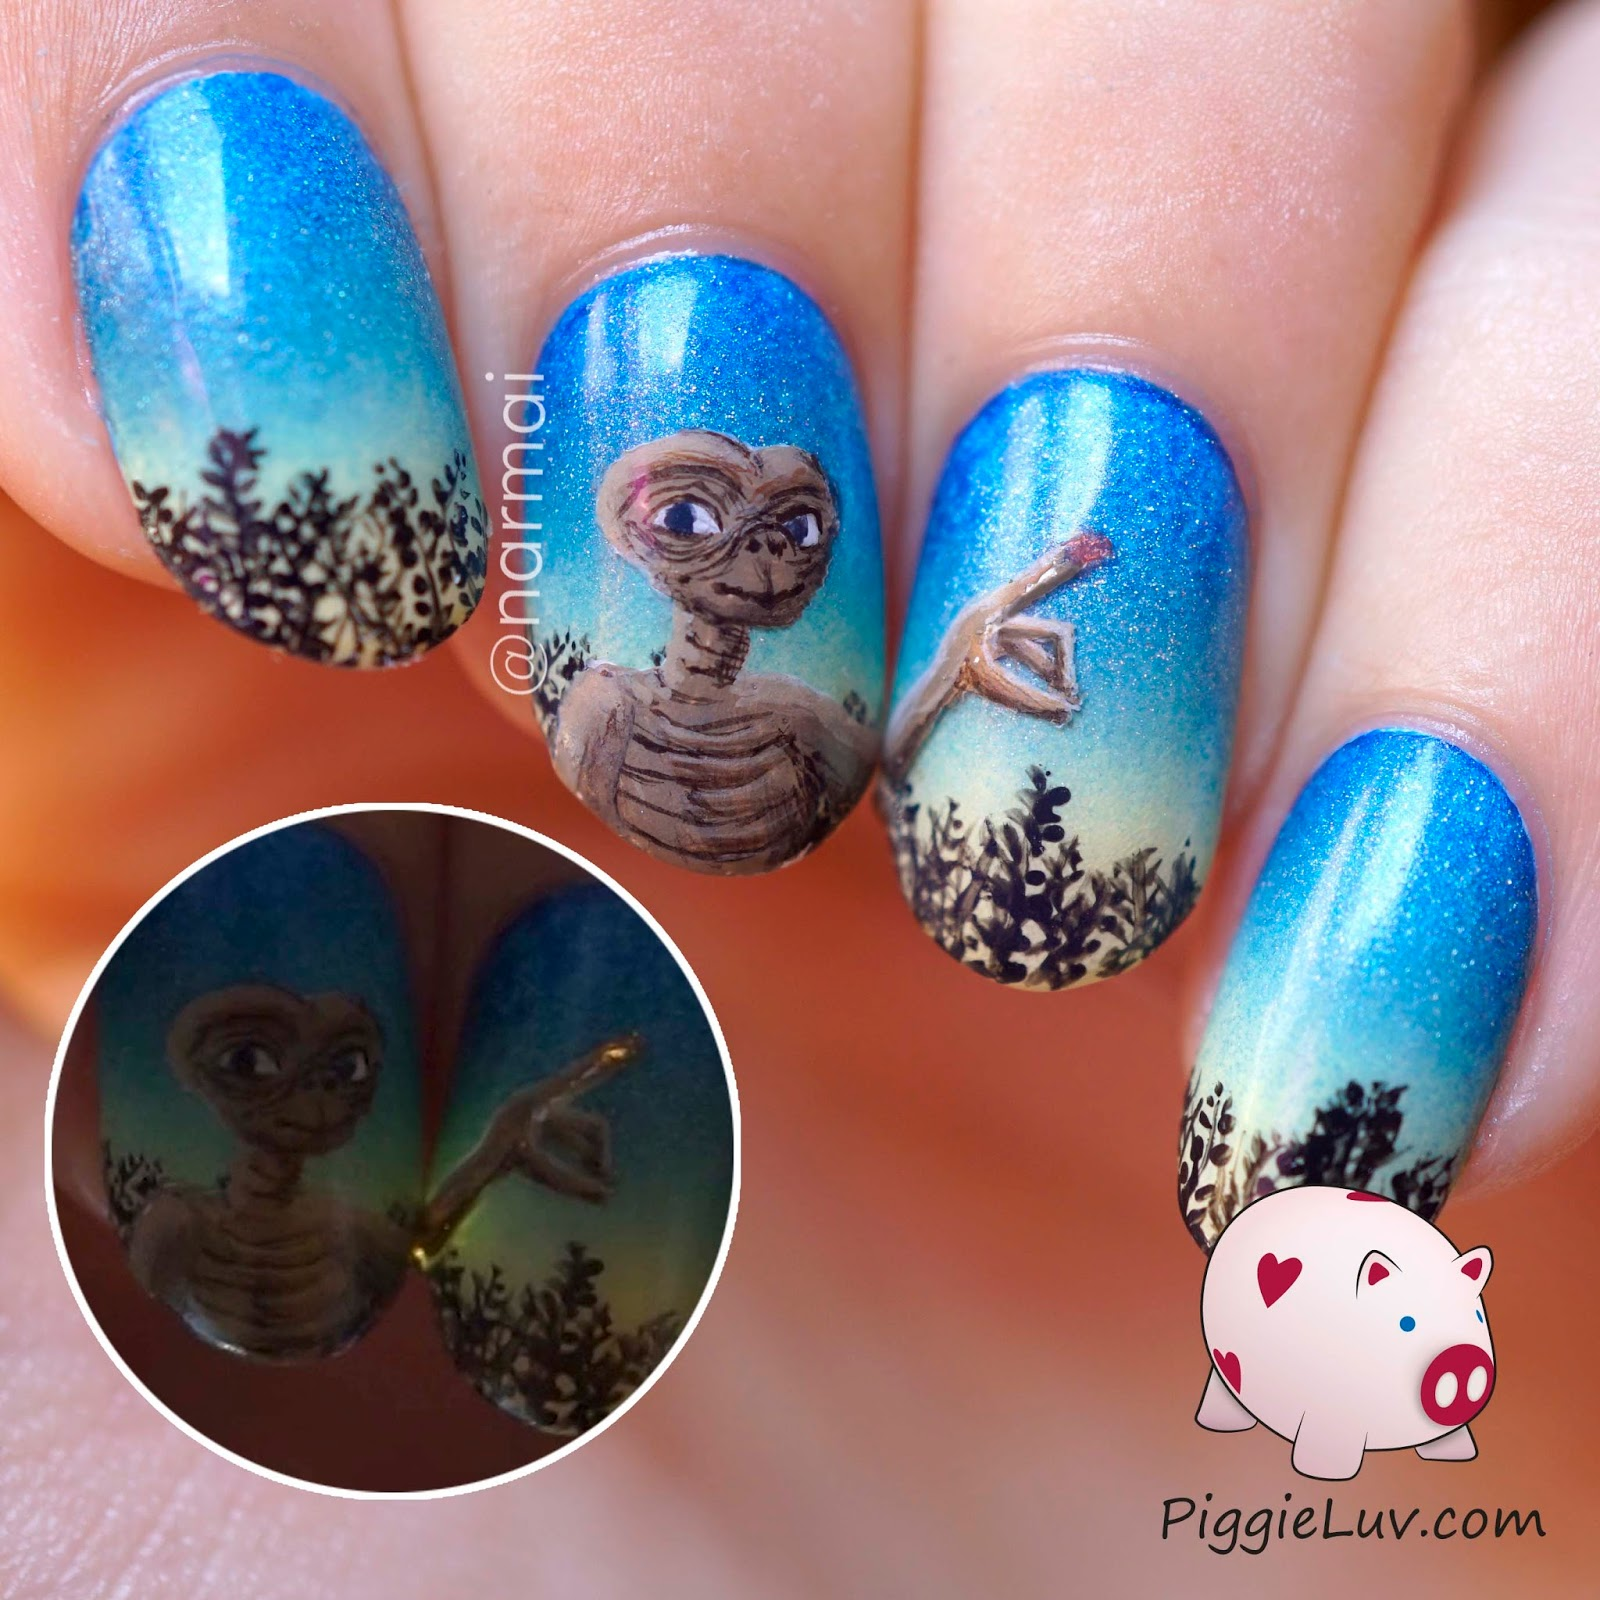 ET Phone Home Nail Art With Fiber Optics